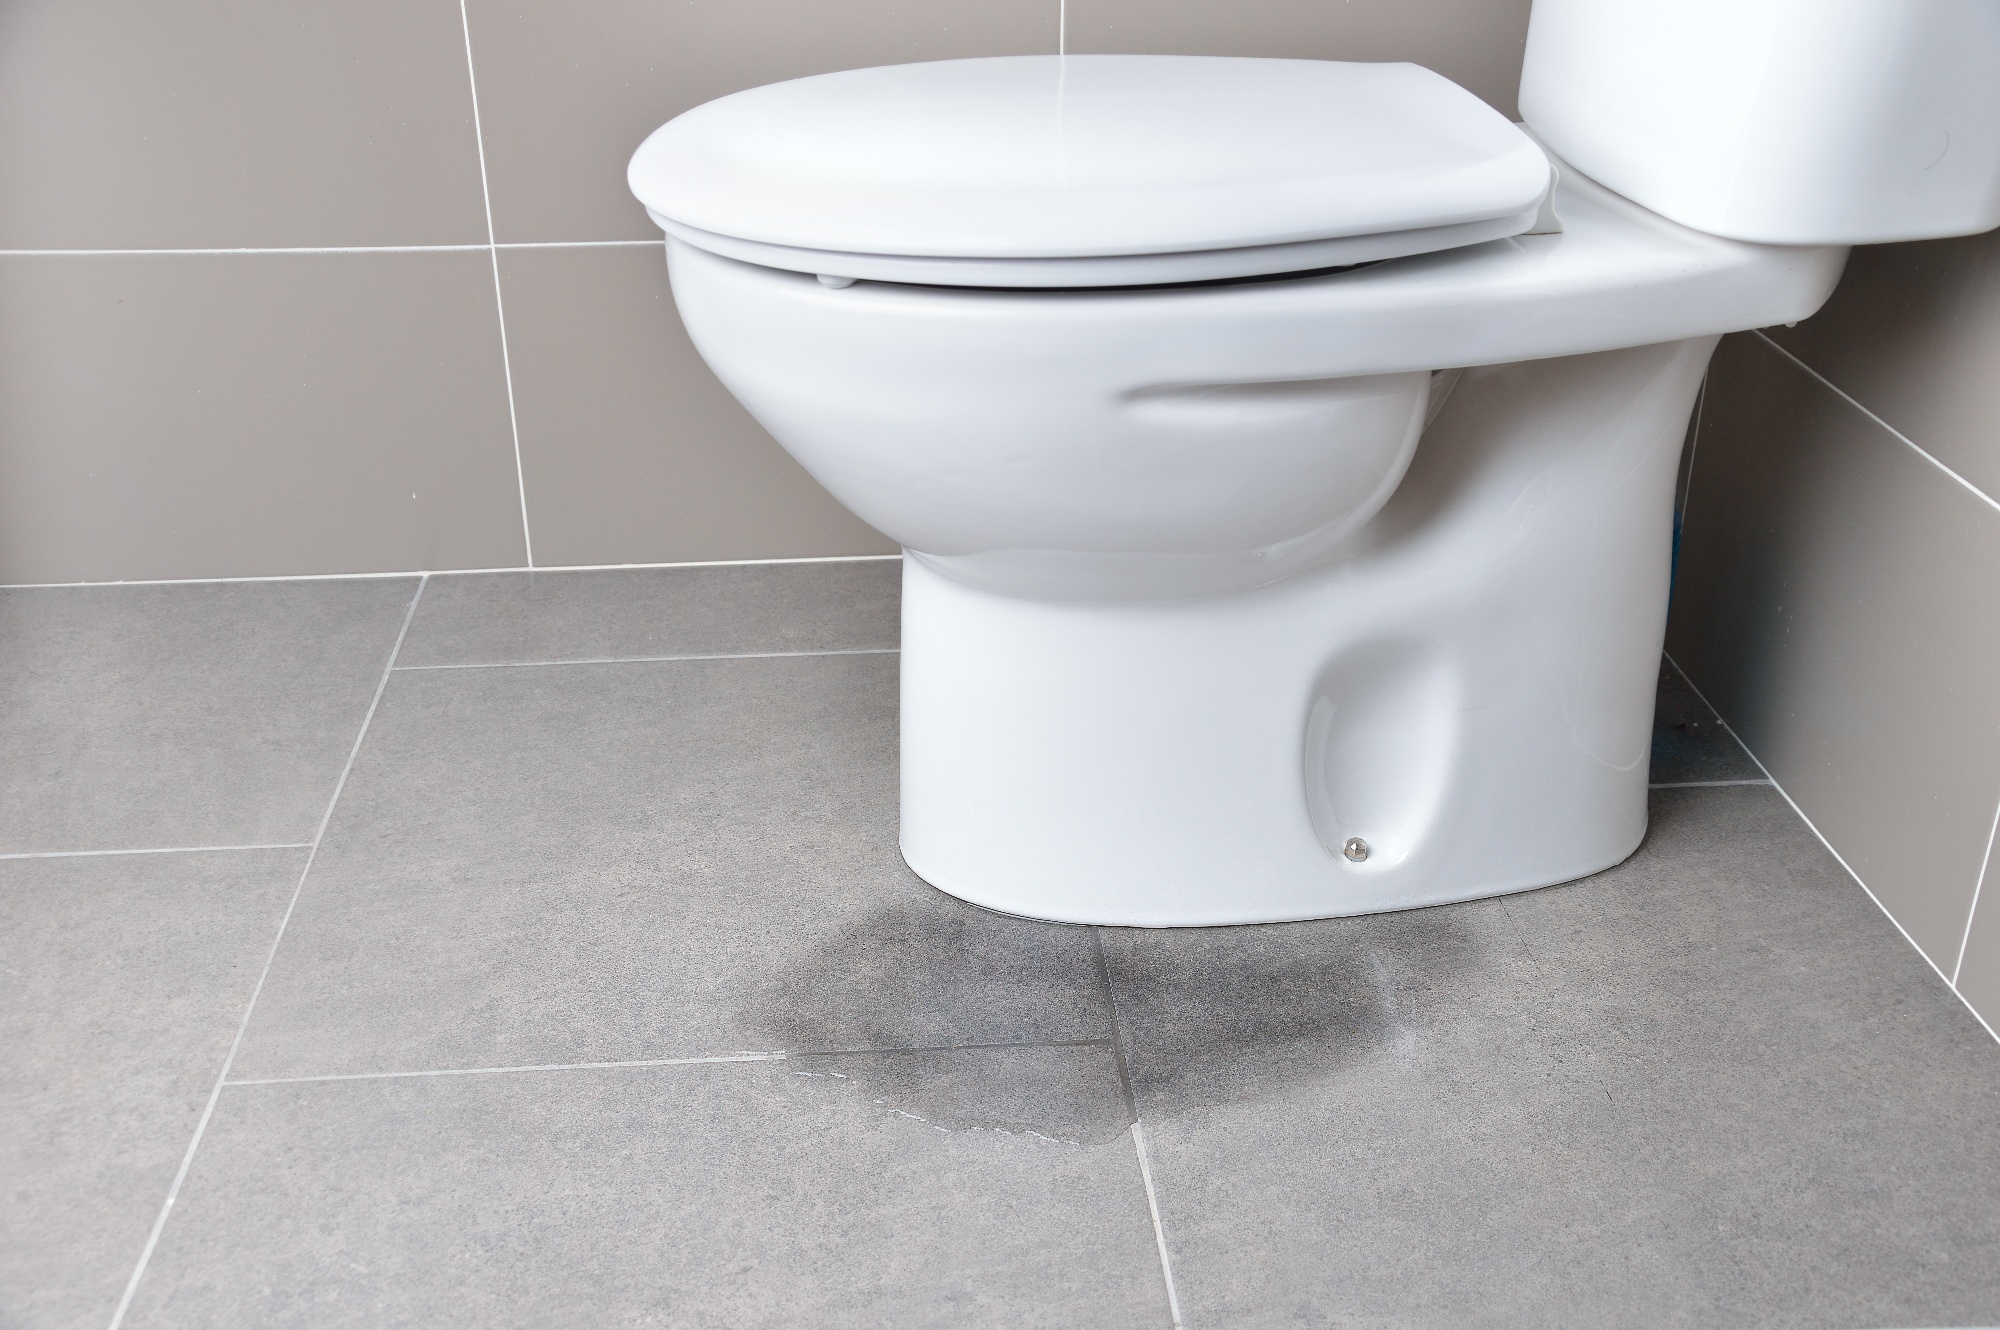 water leaking from middle of toilet